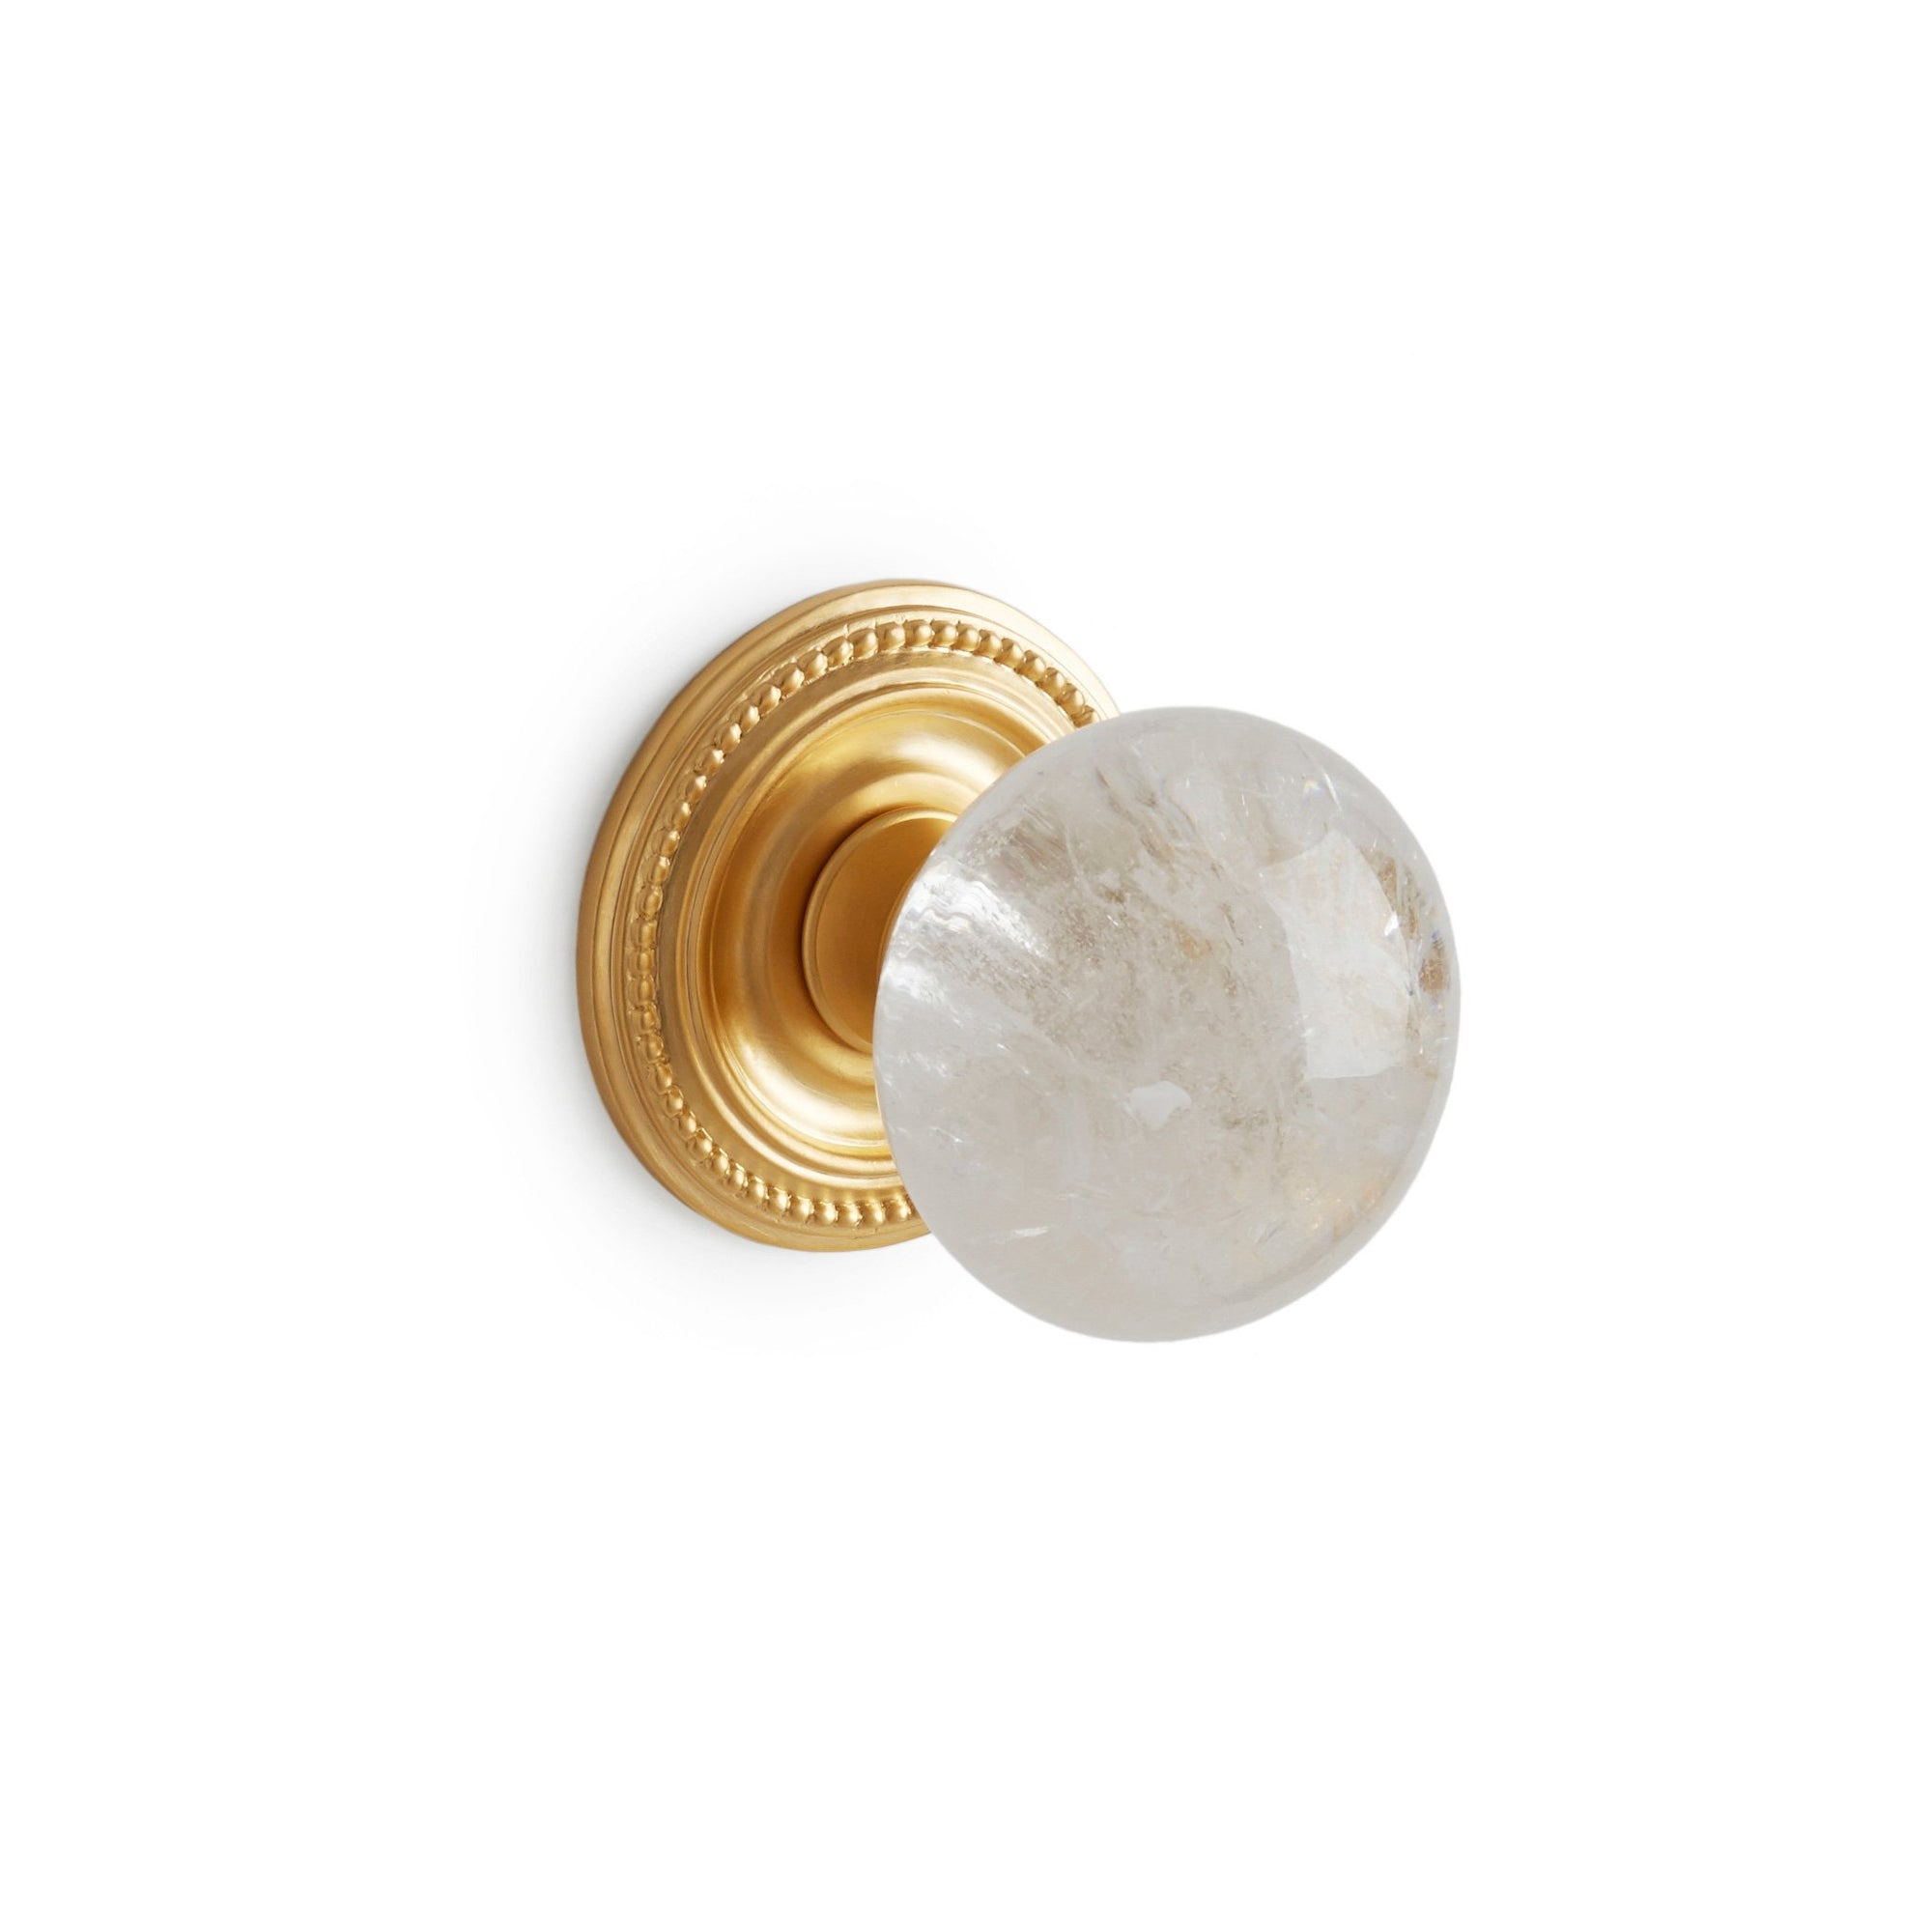 0025DOR-RKCR-GP Sherle Wagner International Semiprecious Rock Crystal Round Door Knob in Gold Plate metal finish